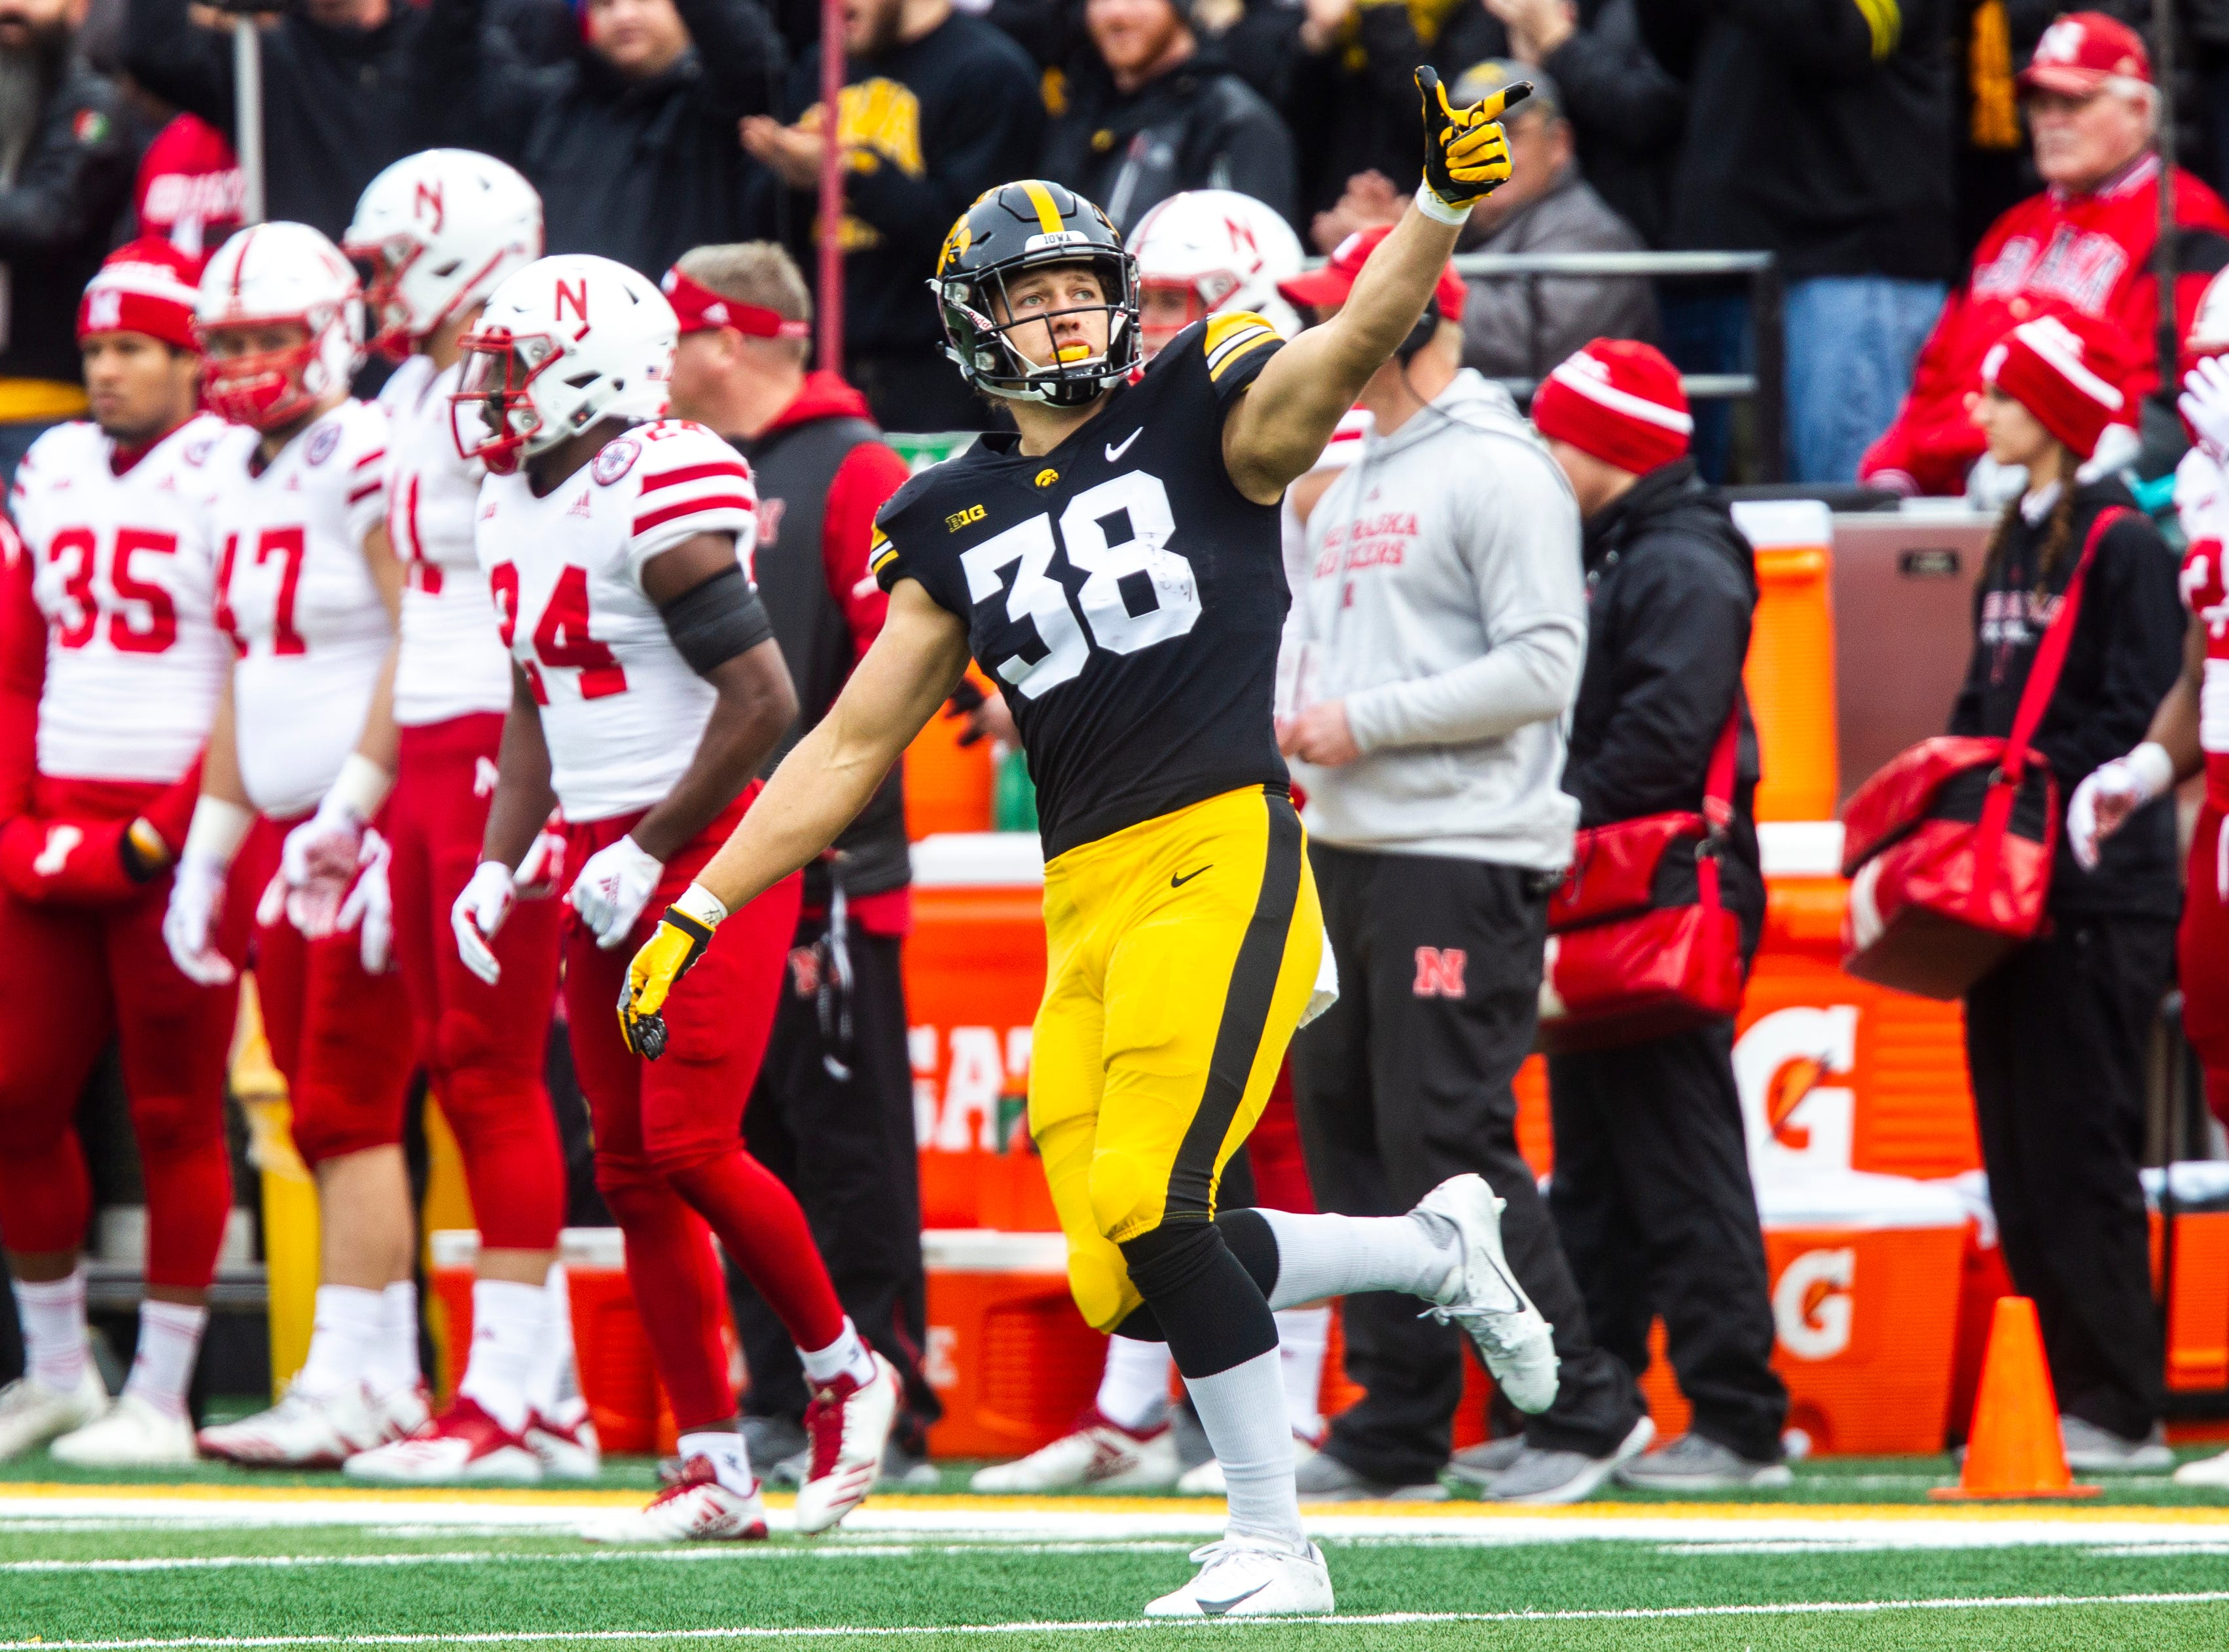 T.J. Hockenson plans to leave Iowa football, enter 2019 NFL Draft